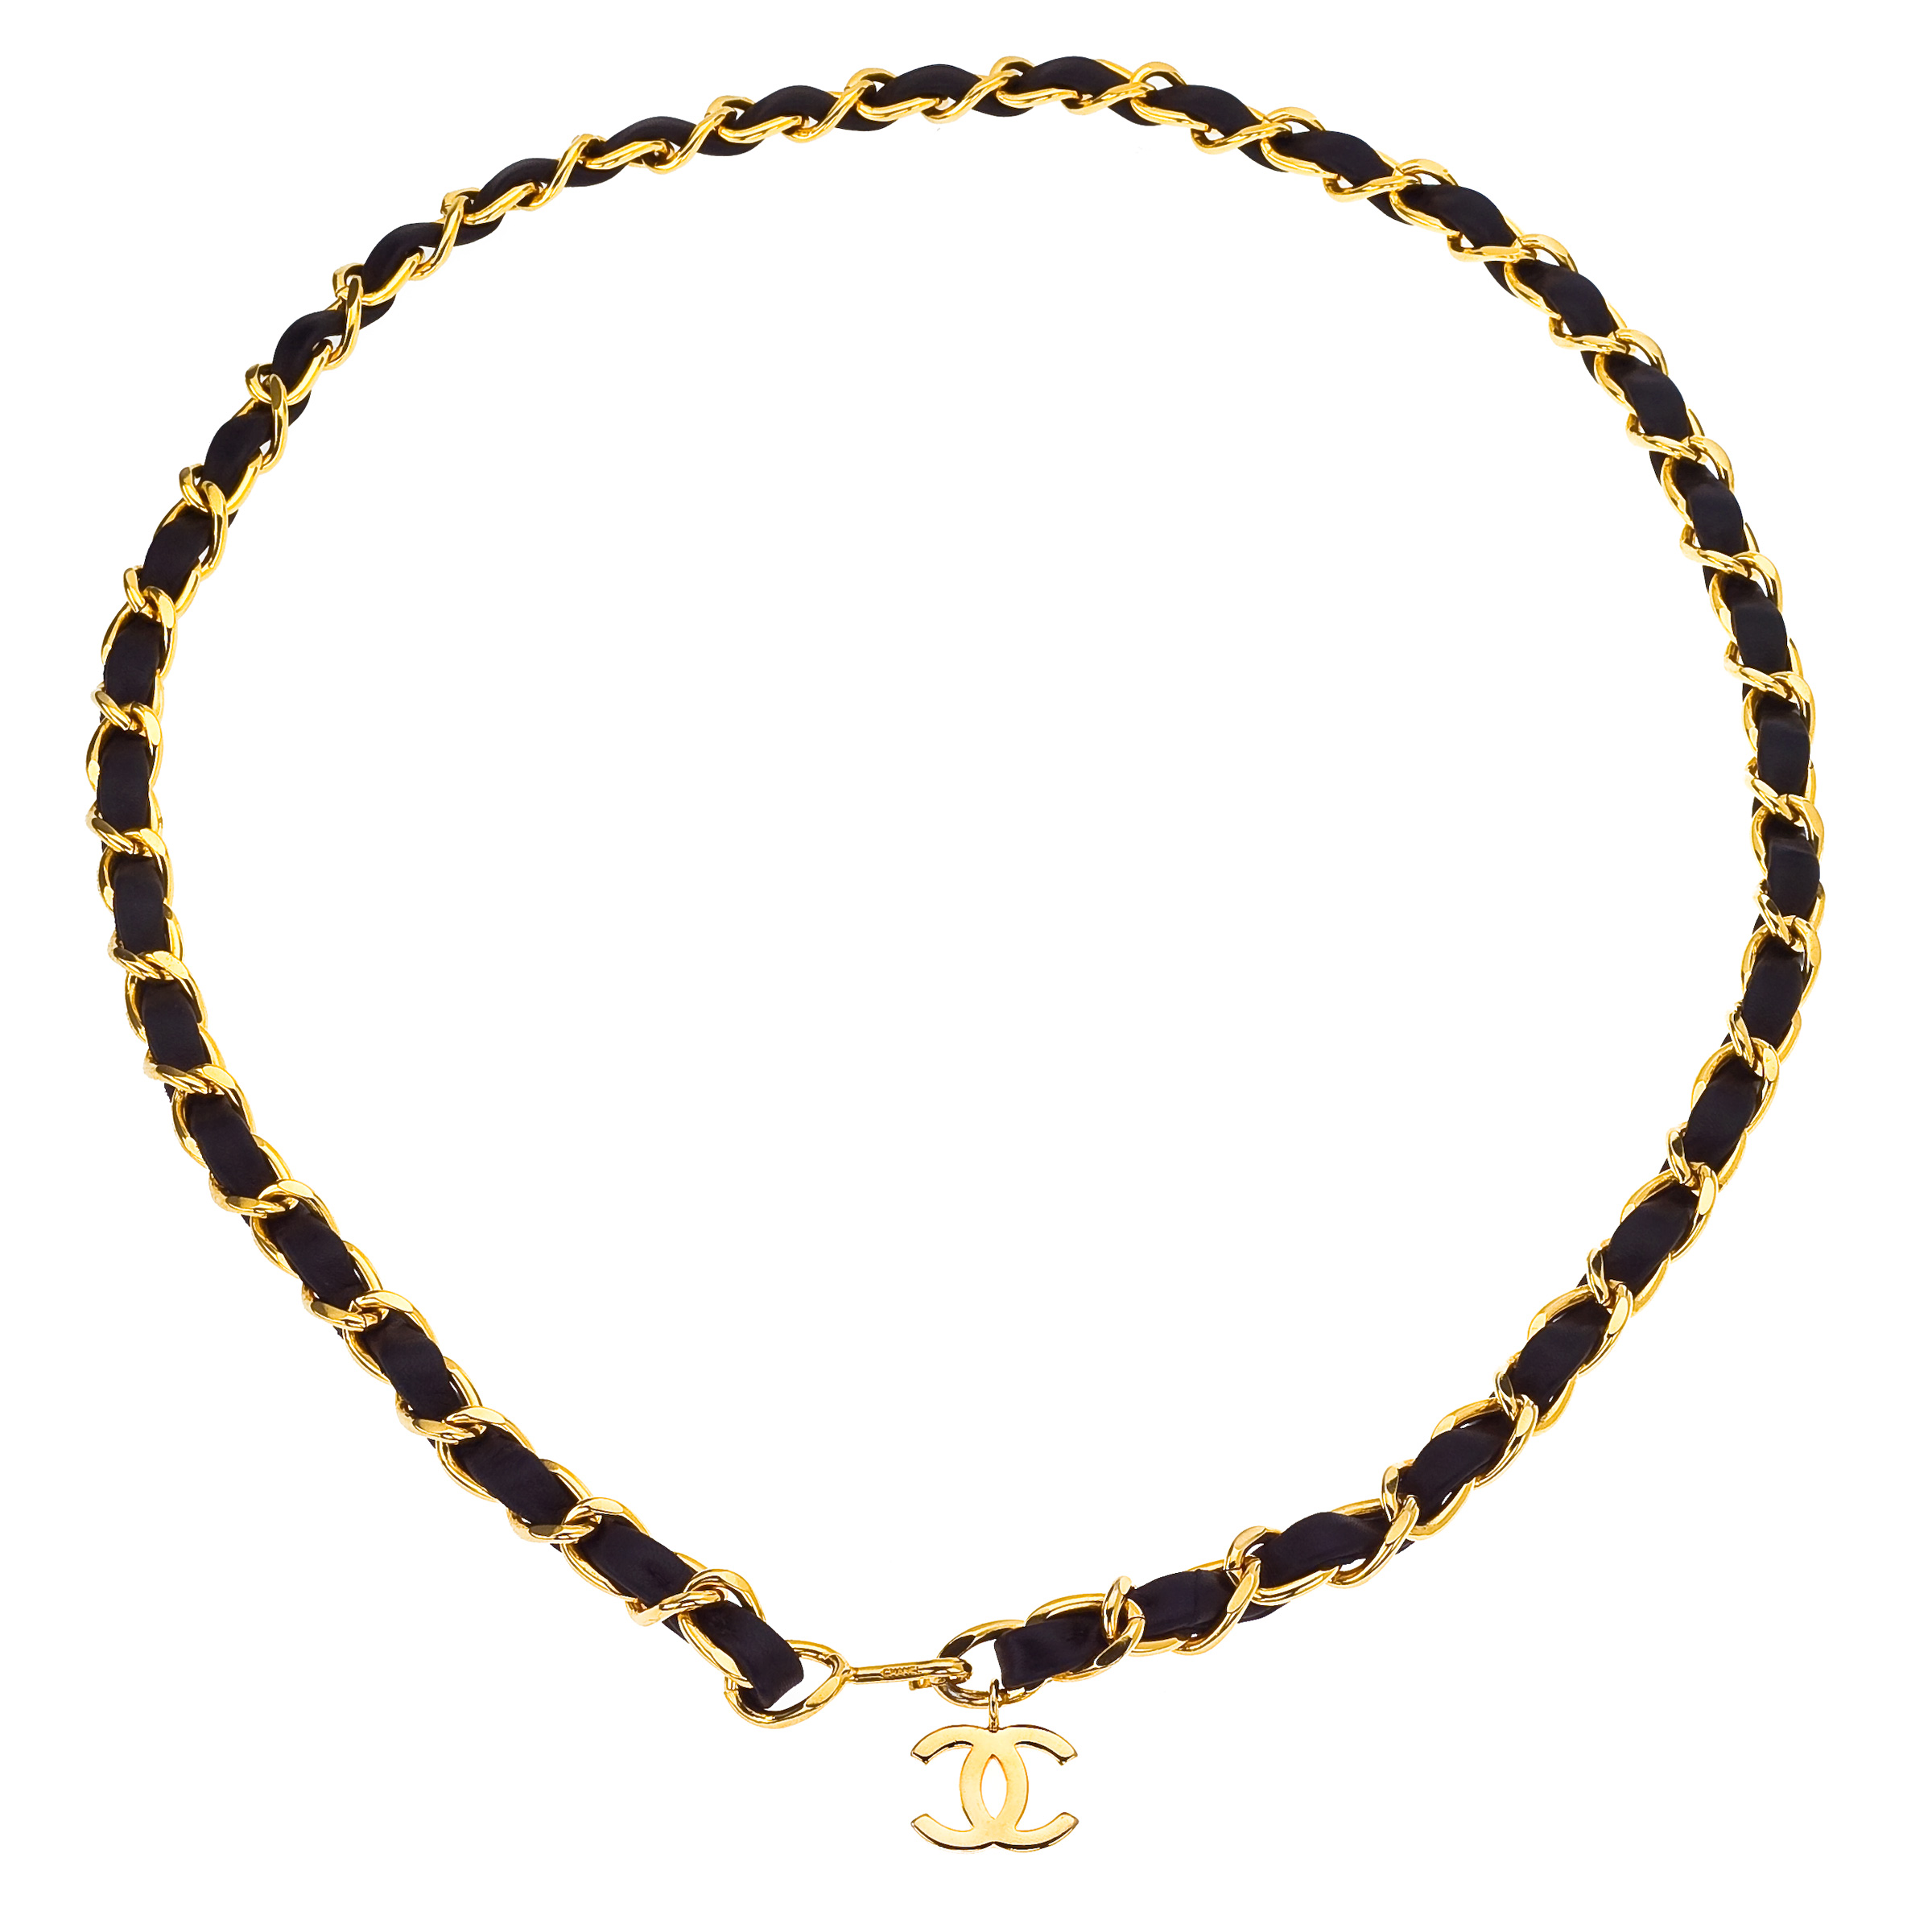 CHANEL ICONIC CHAIN BELT-NECKLACE WITH CC 1